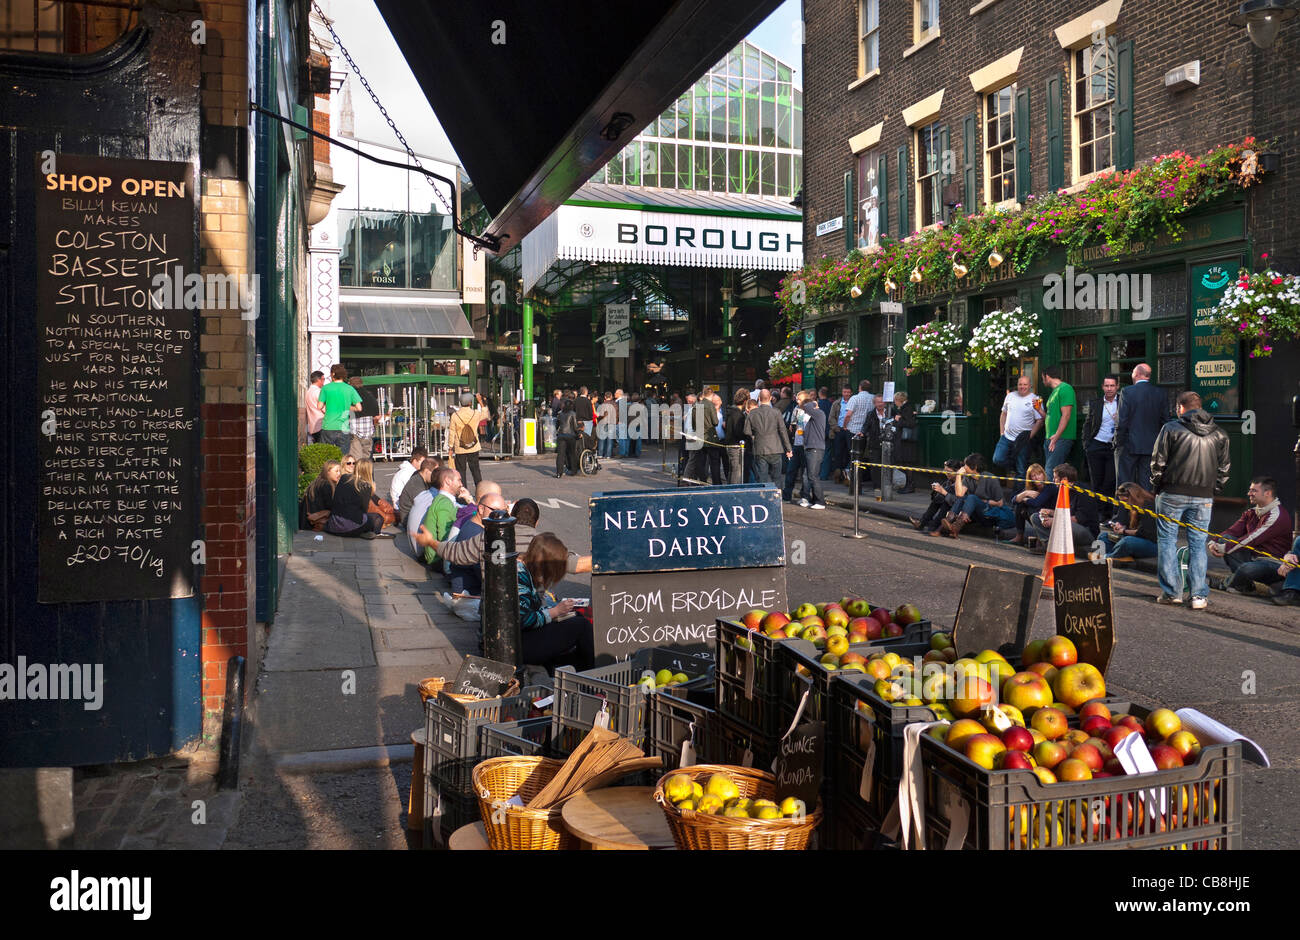 Borough Market a renowned popular international produce retail market and Neal's Yard Dairy London Bridge Southwark - Stock Image